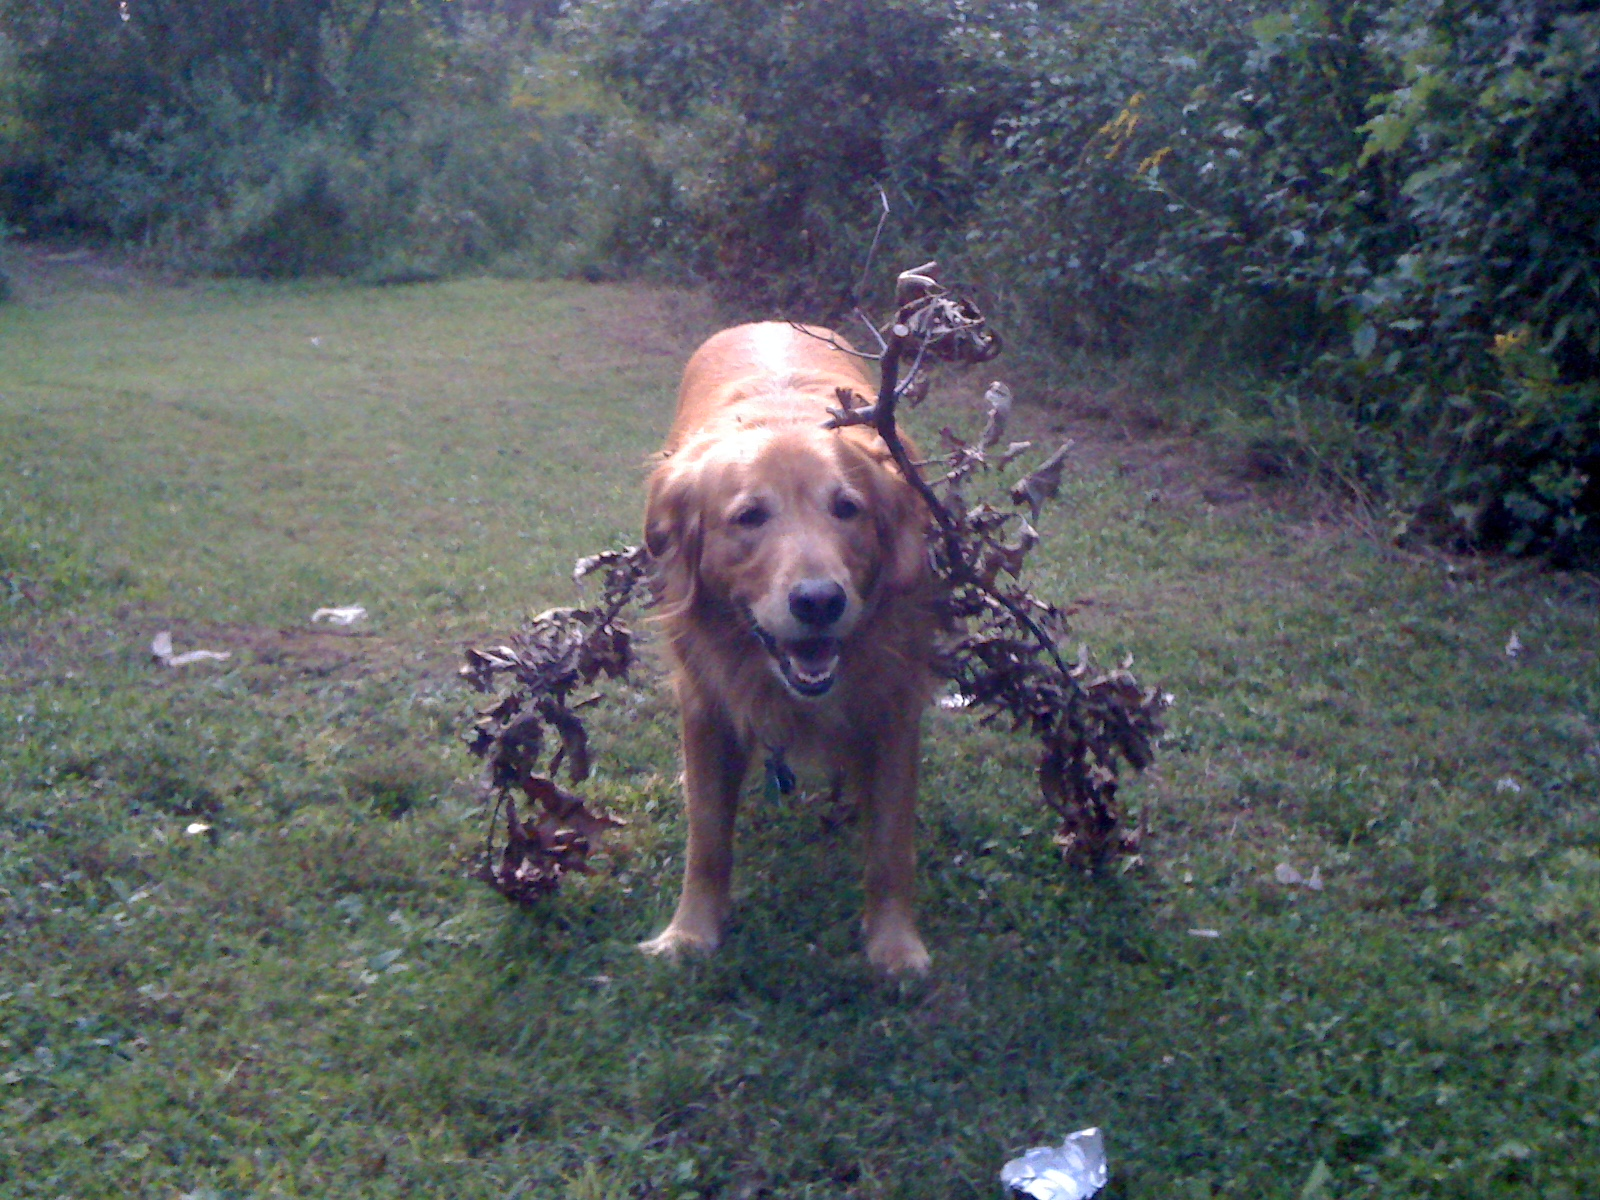 Wandering through the bushes, got a branch stuck on him.